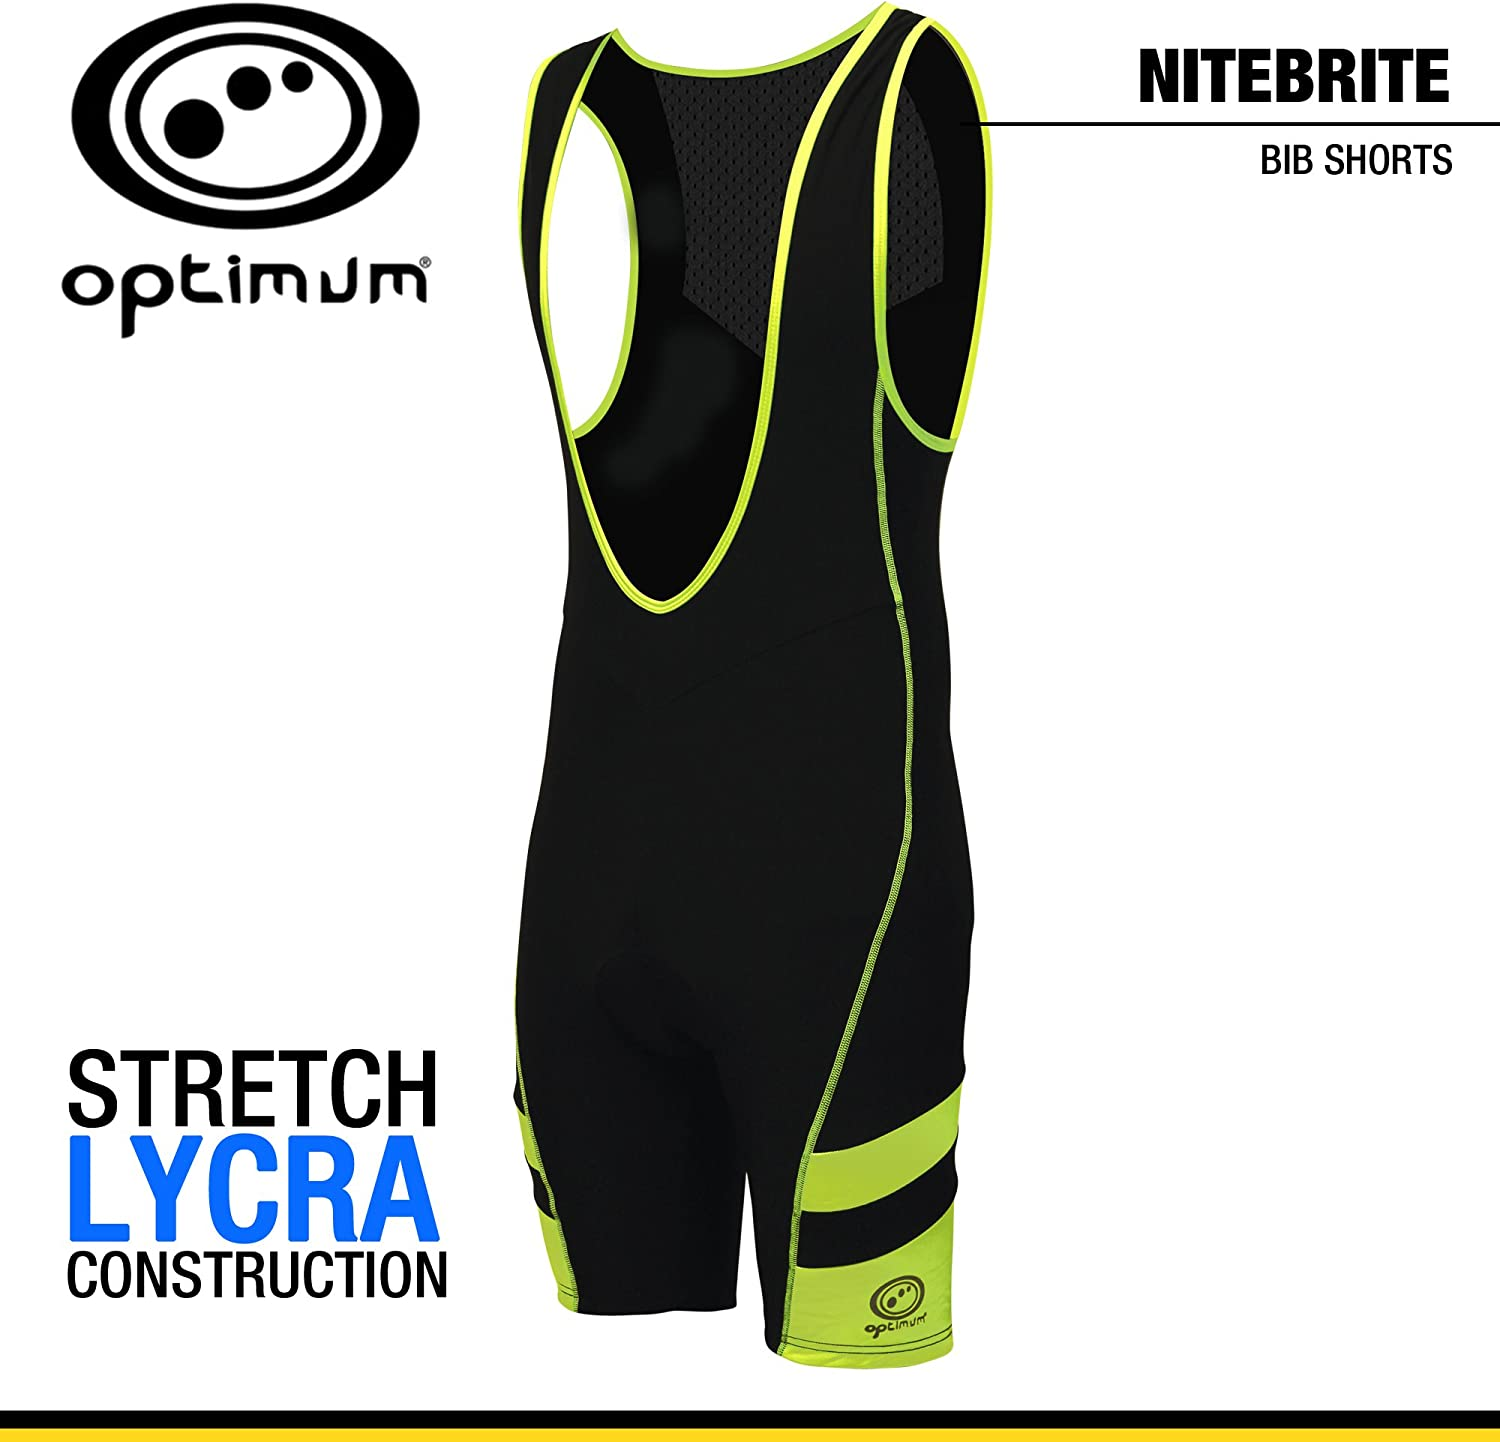 (X-Large) - Optimum Mens Nitebrite Bib Shorts